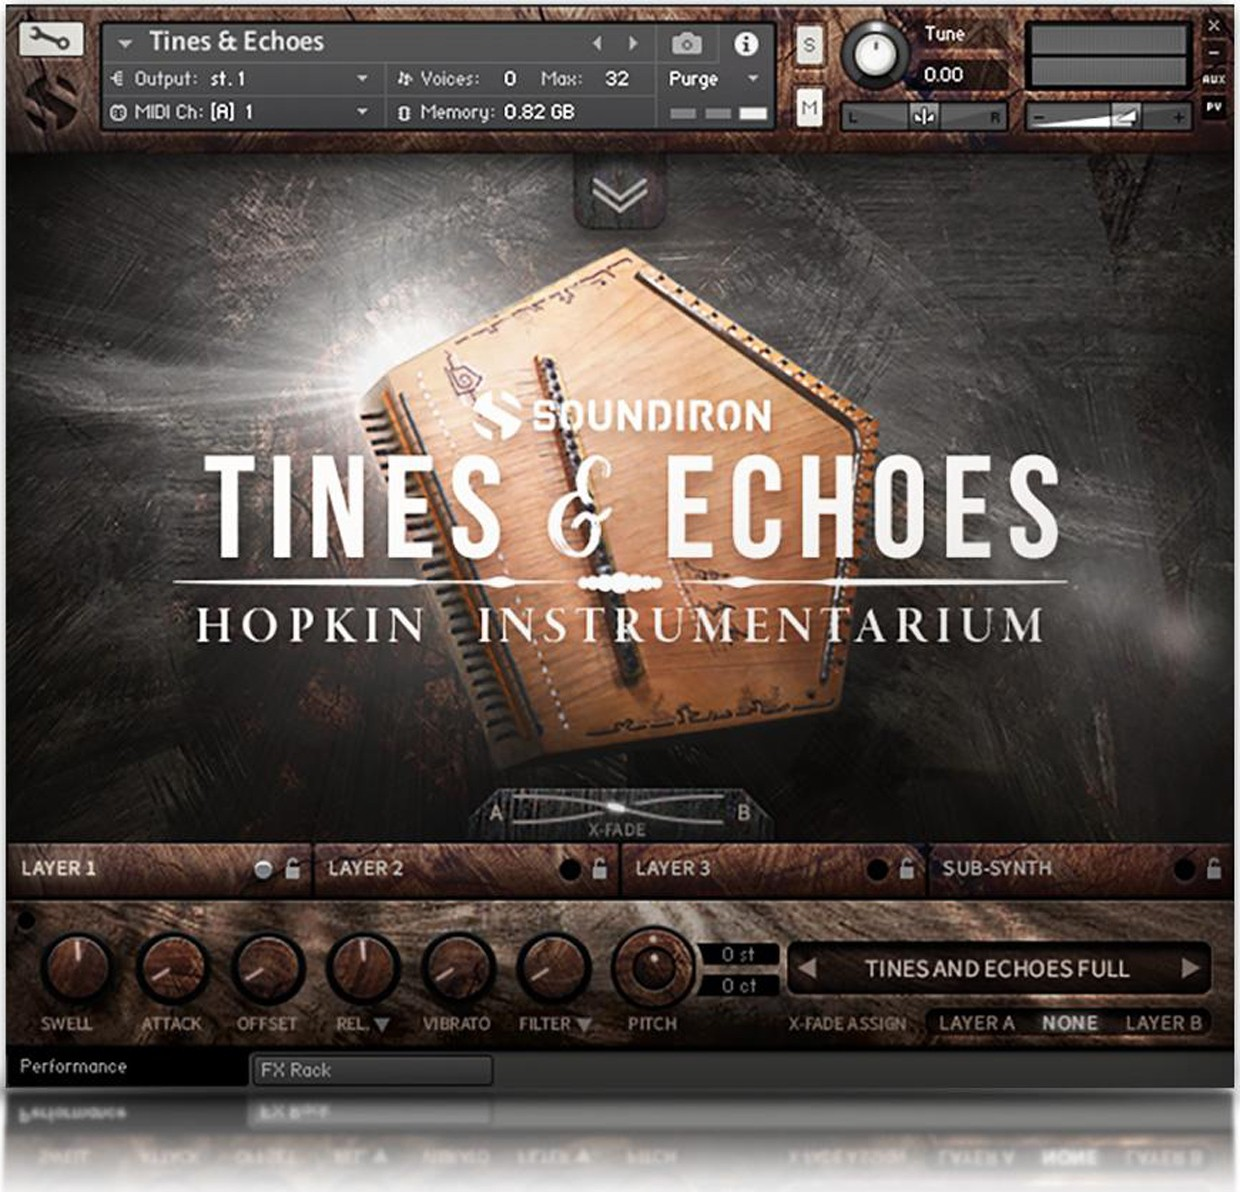 Tines & Echoes GUI